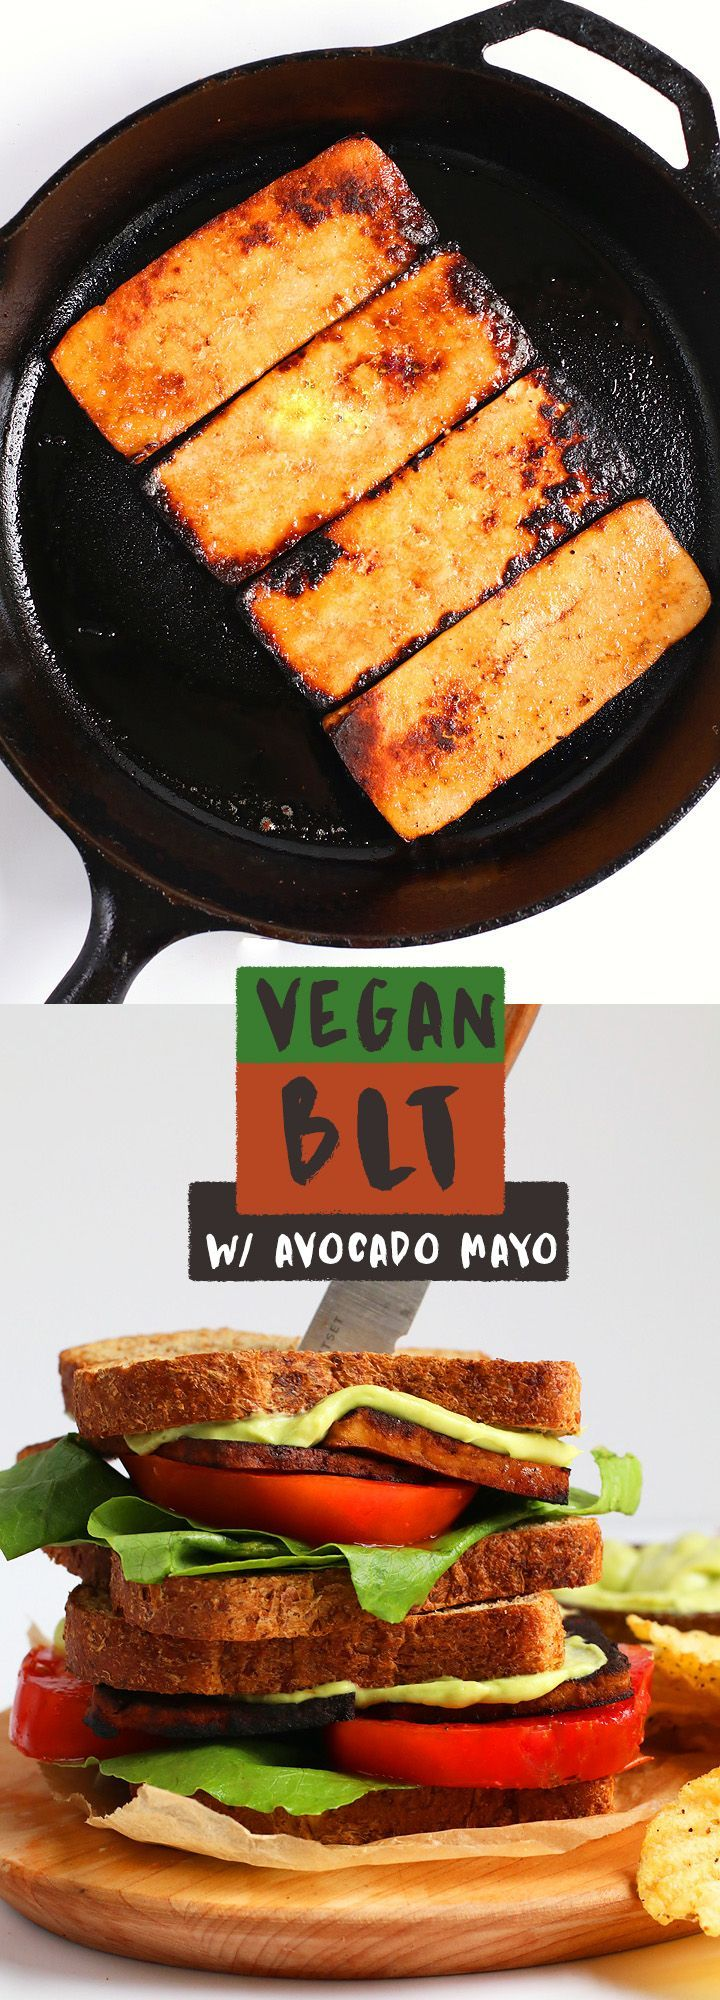 A healthy and plant-based twist on everyone's favorite sandwich, this vegan BLT is made with smoky tofu bacon and homemade avocado mayo.